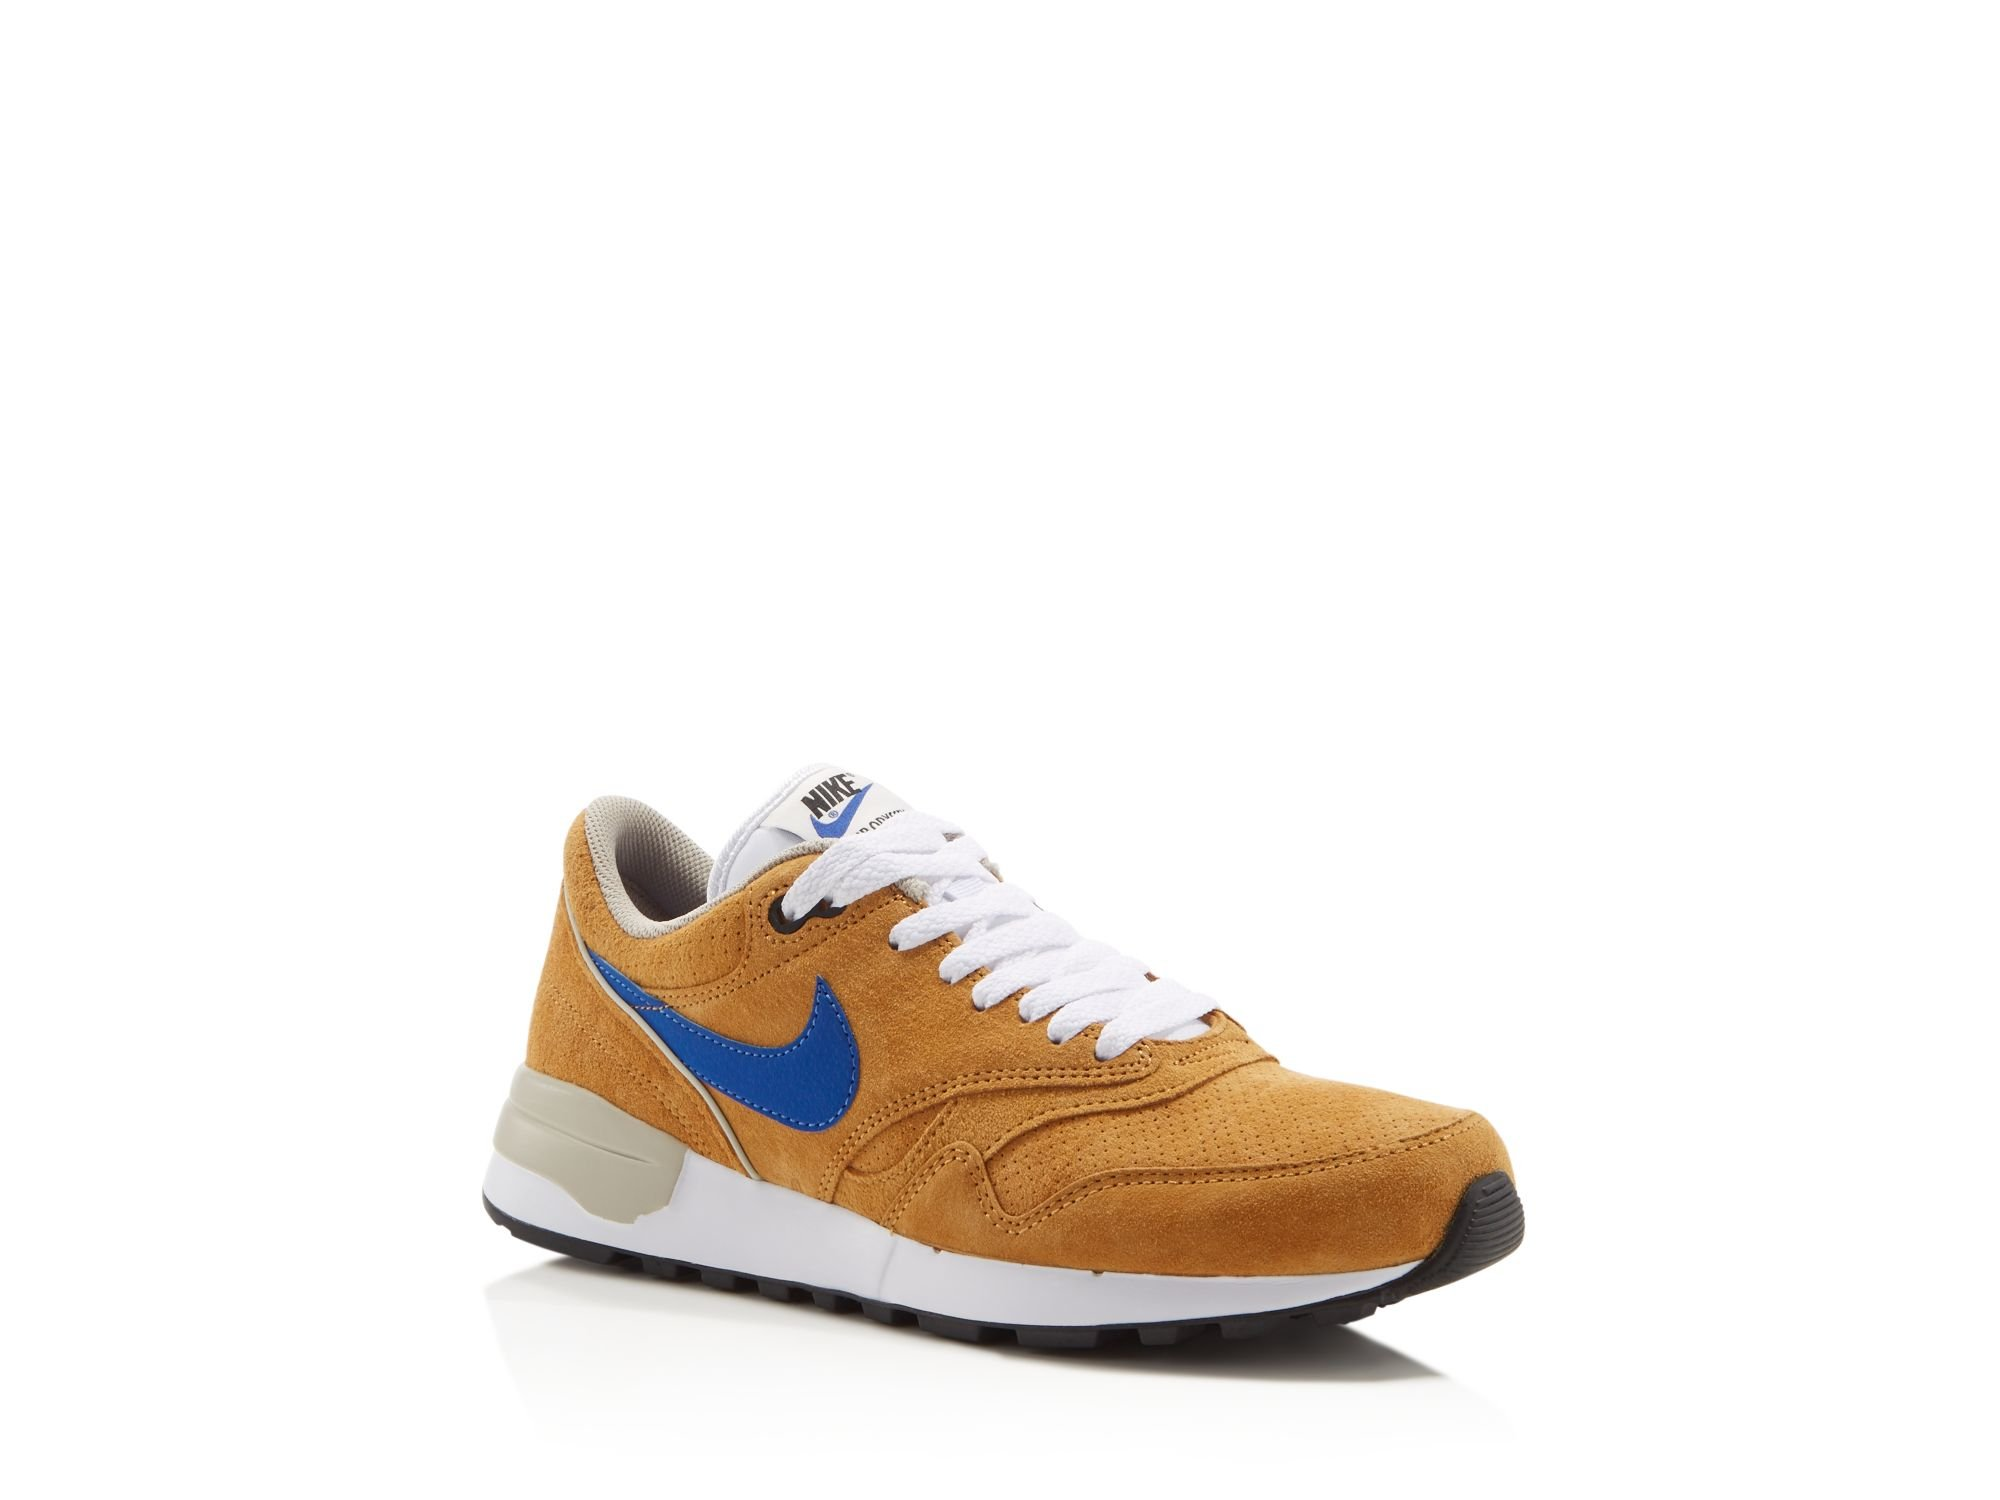 nike air odyssey ltr sneakers in yellow for men lyst. Black Bedroom Furniture Sets. Home Design Ideas